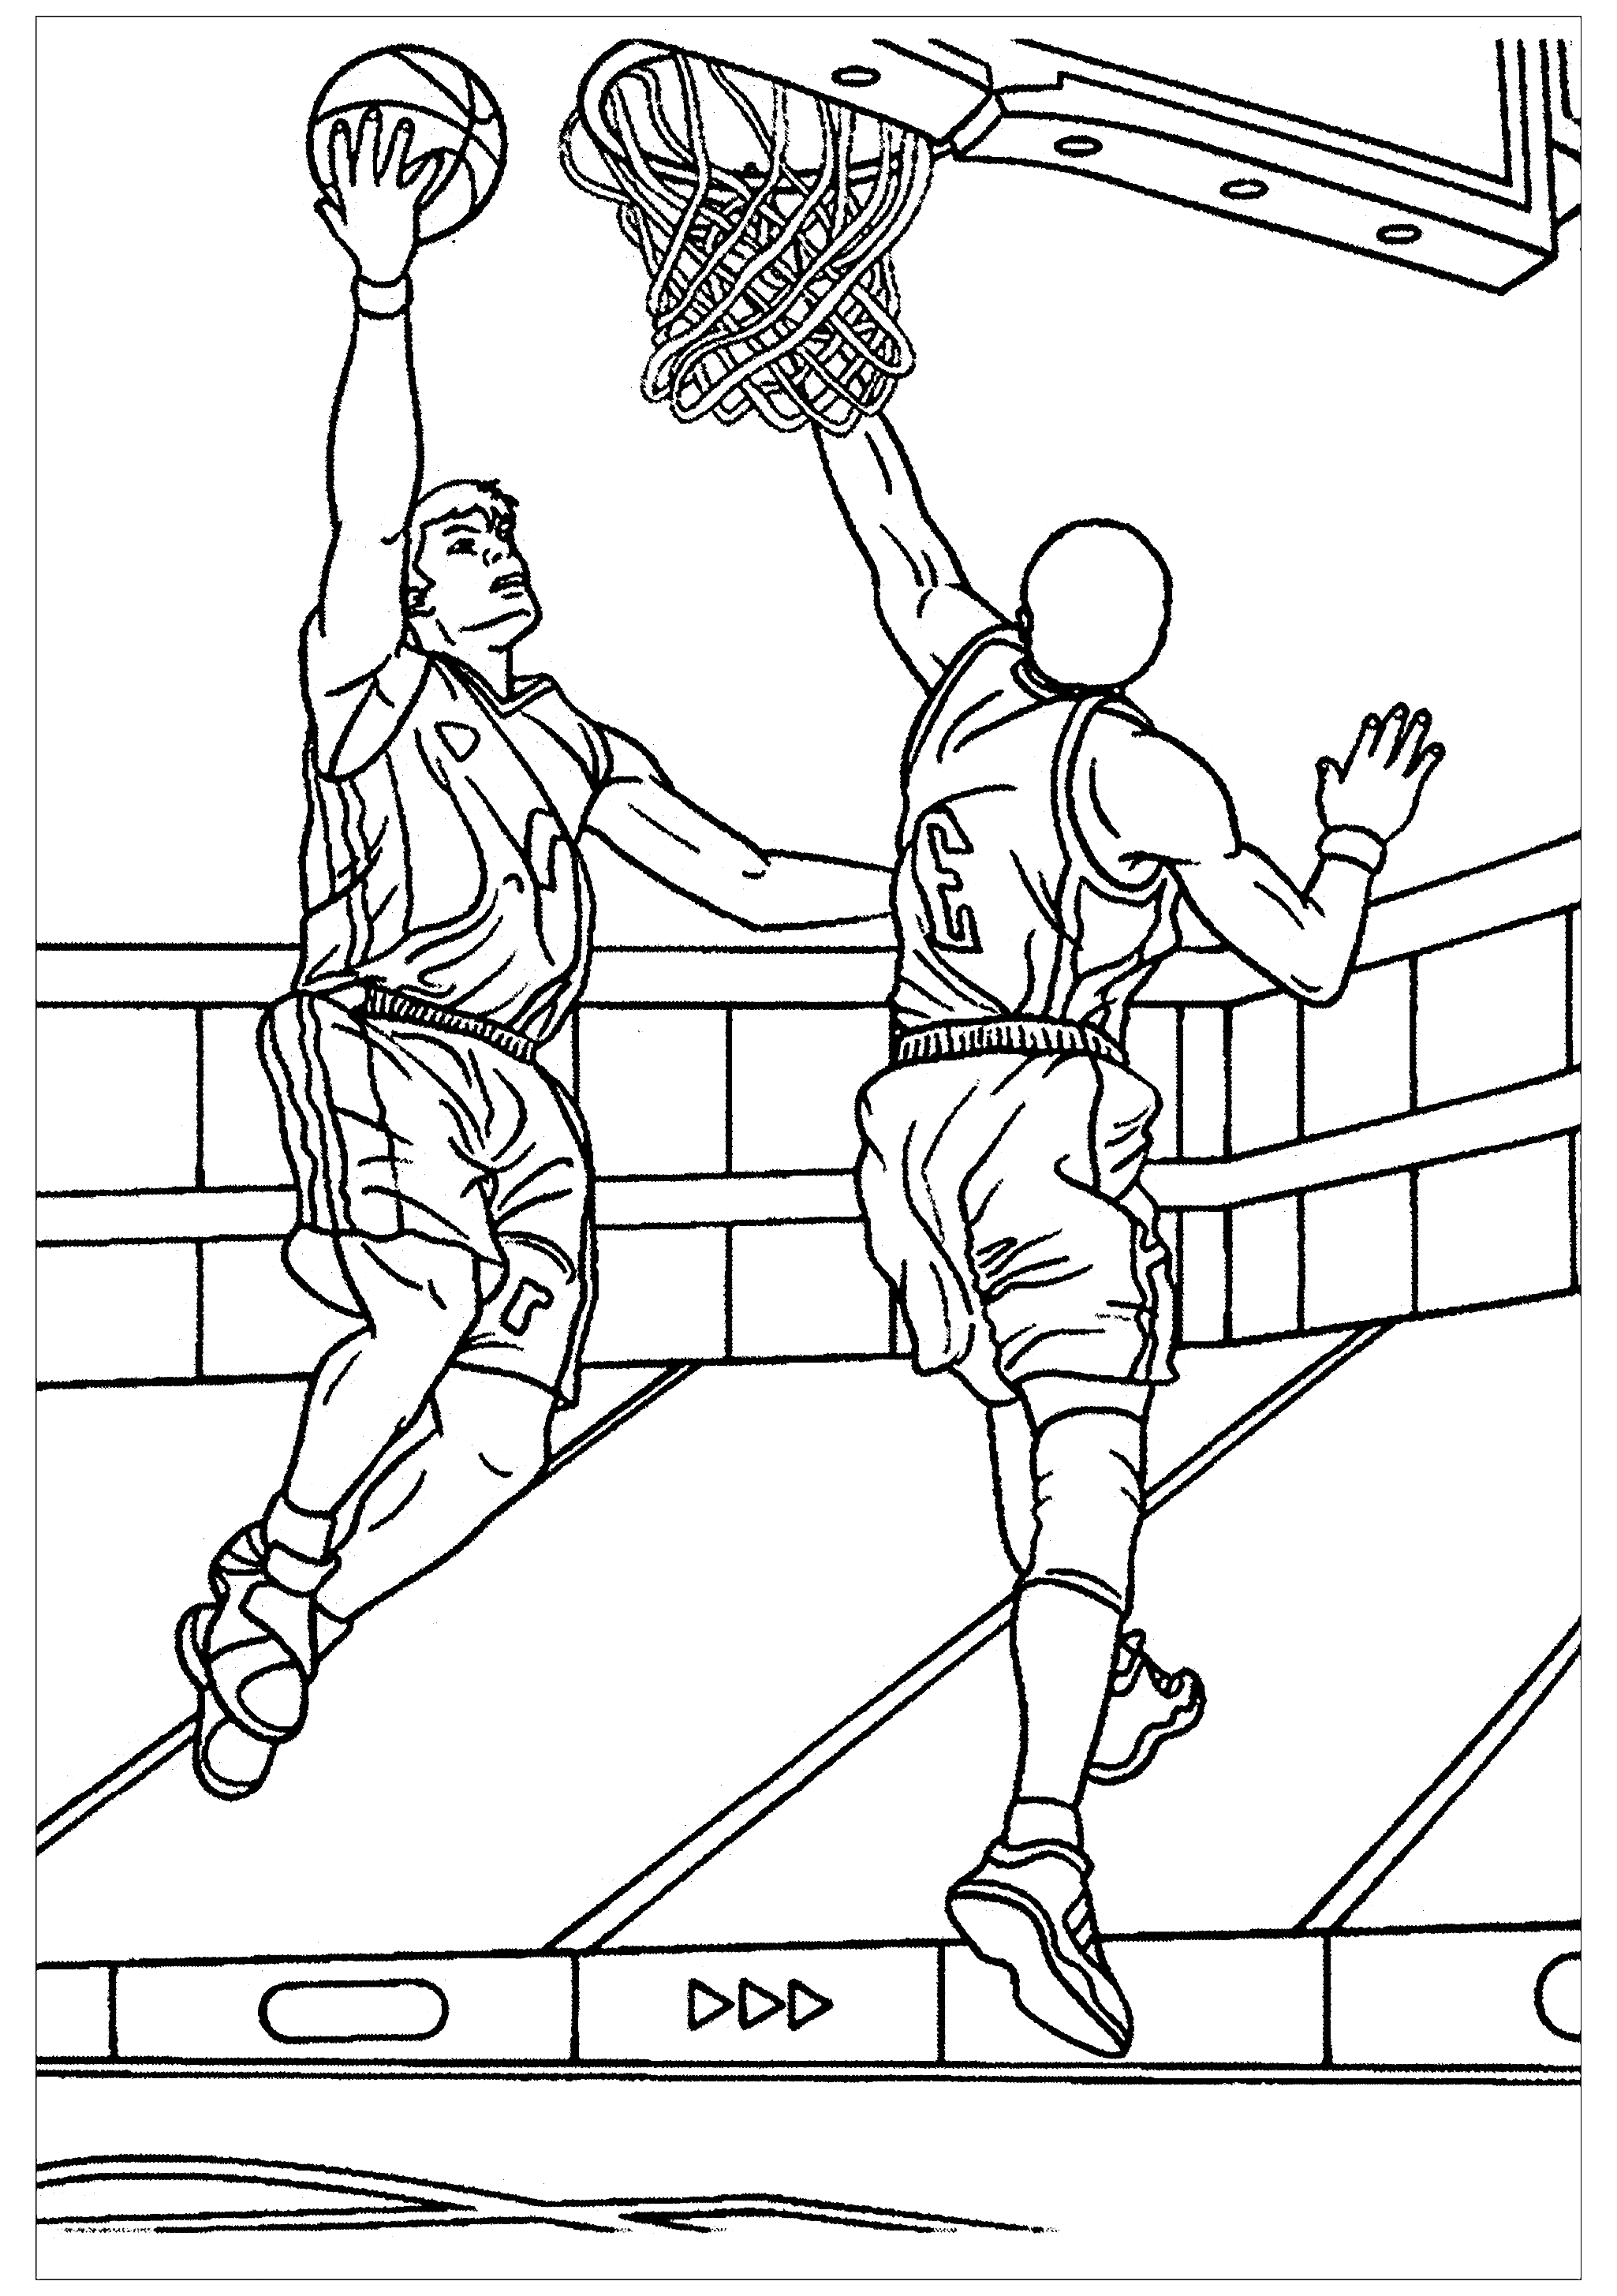 basketball pictures to color basketball to download for free basketball kids coloring color pictures basketball to